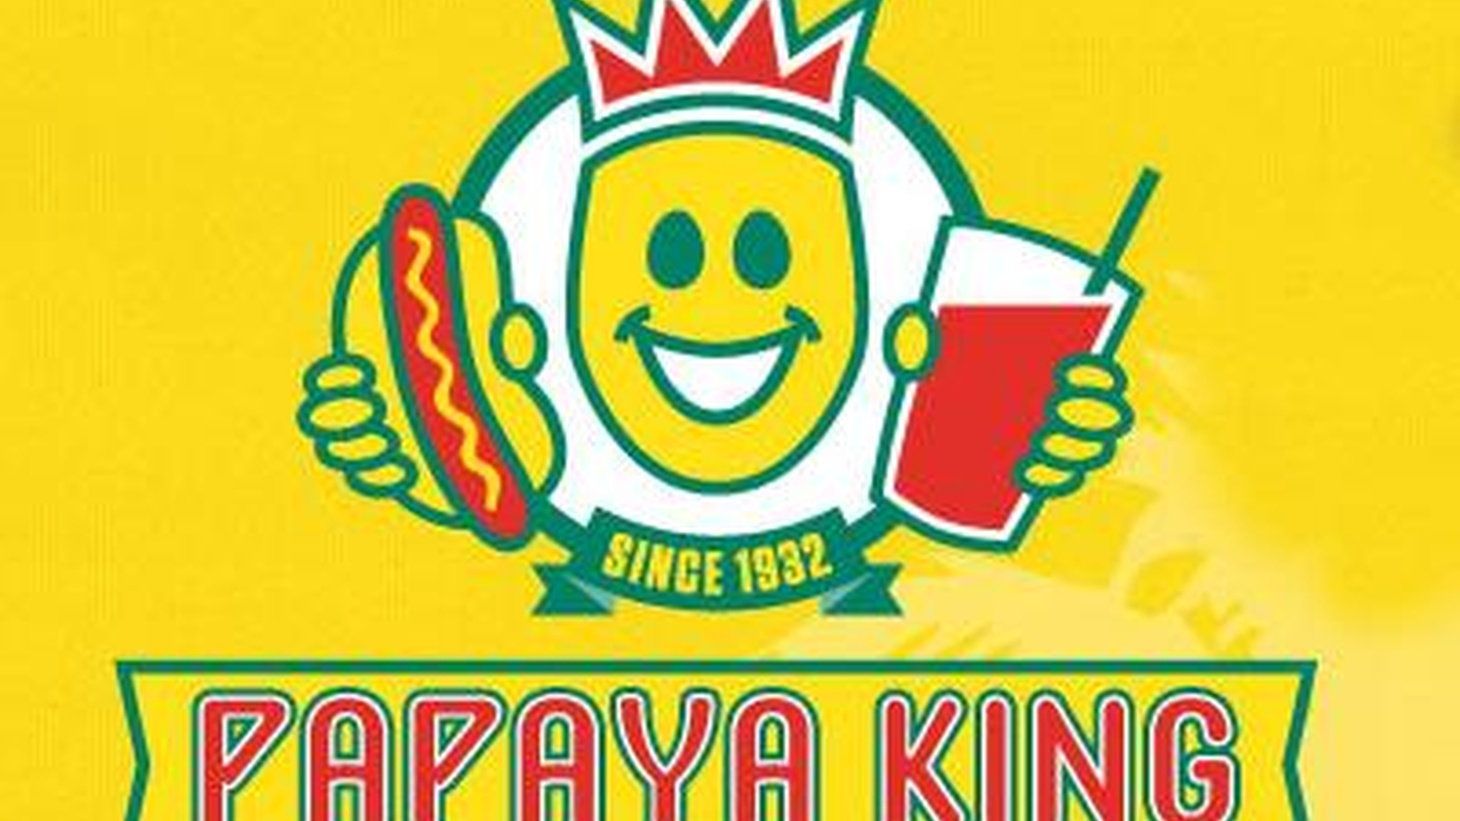 Pulitzer Prize-winning food critic Jonathan Gold reviews Papaya King, the New York hot dog stand that just opened in Hollywood...